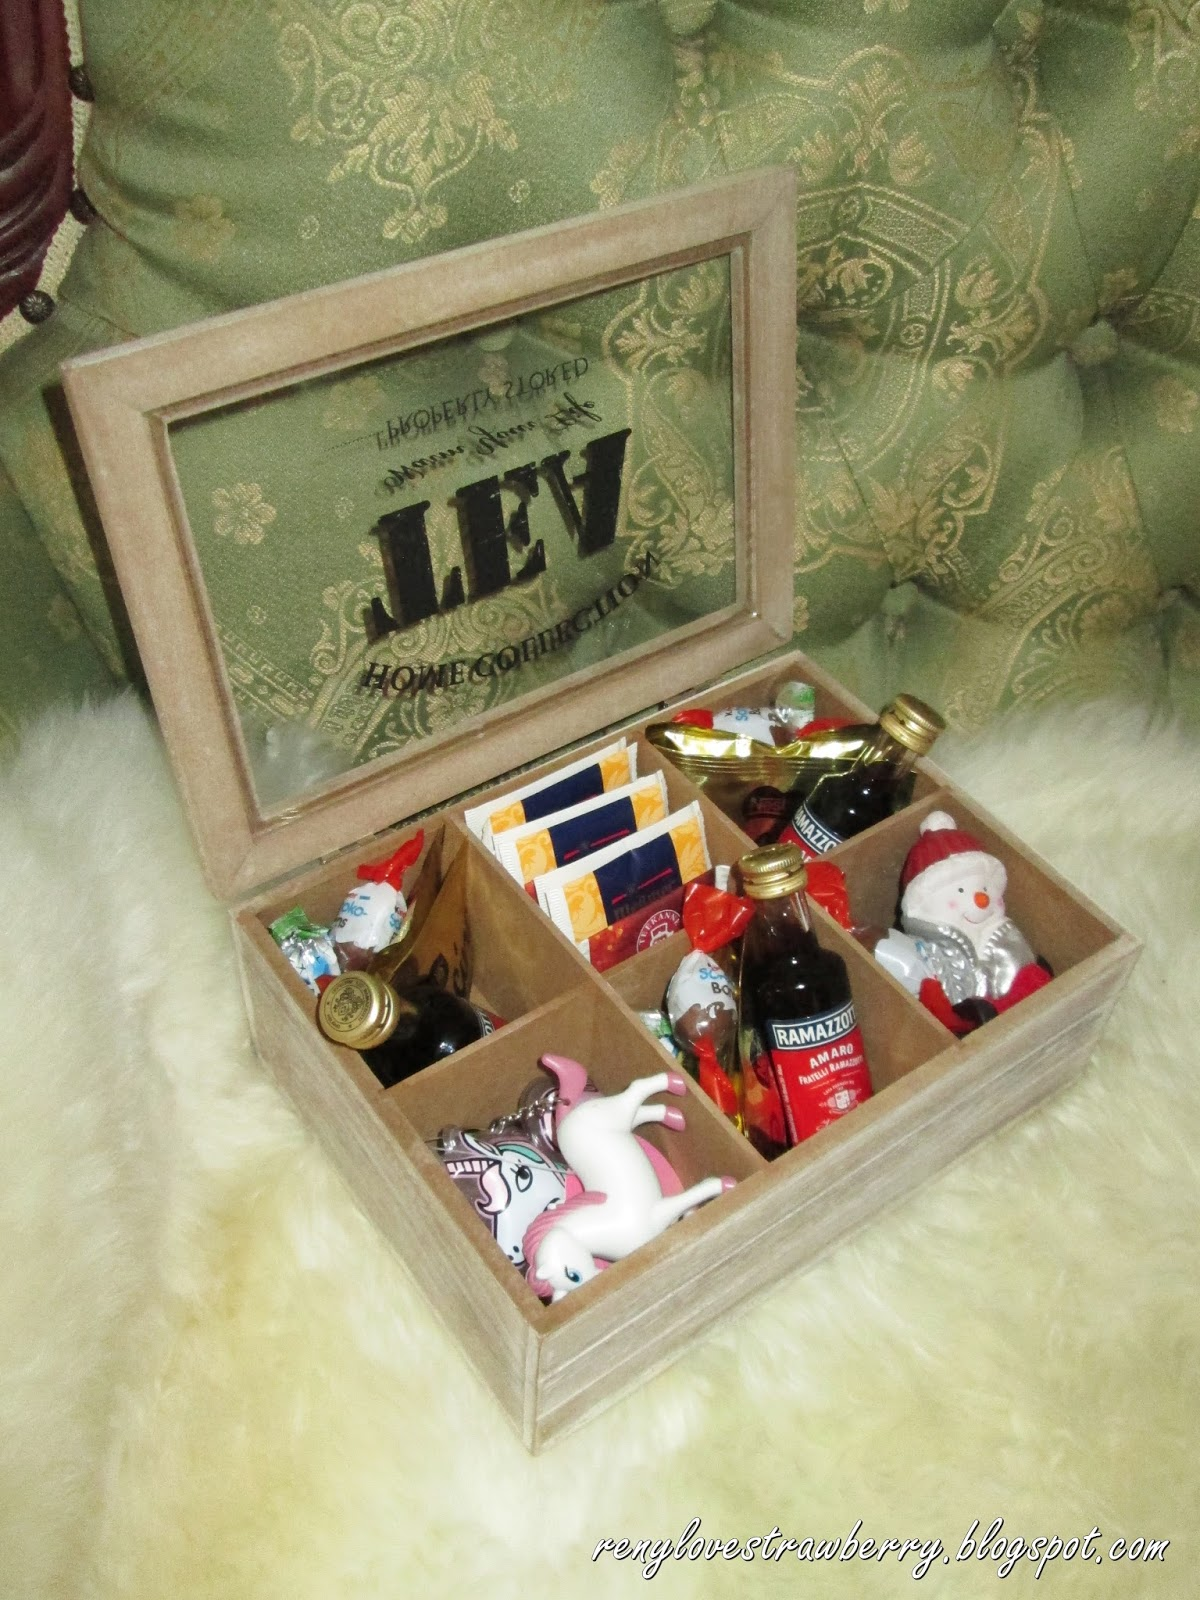 Strawberry love by reny gift guide tea storage gift box basically i bought a tea organizer box and fill it with tea chocolates mini bottles of liquor hot chocolate a little christmas decor and my friend loves solutioingenieria Choice Image